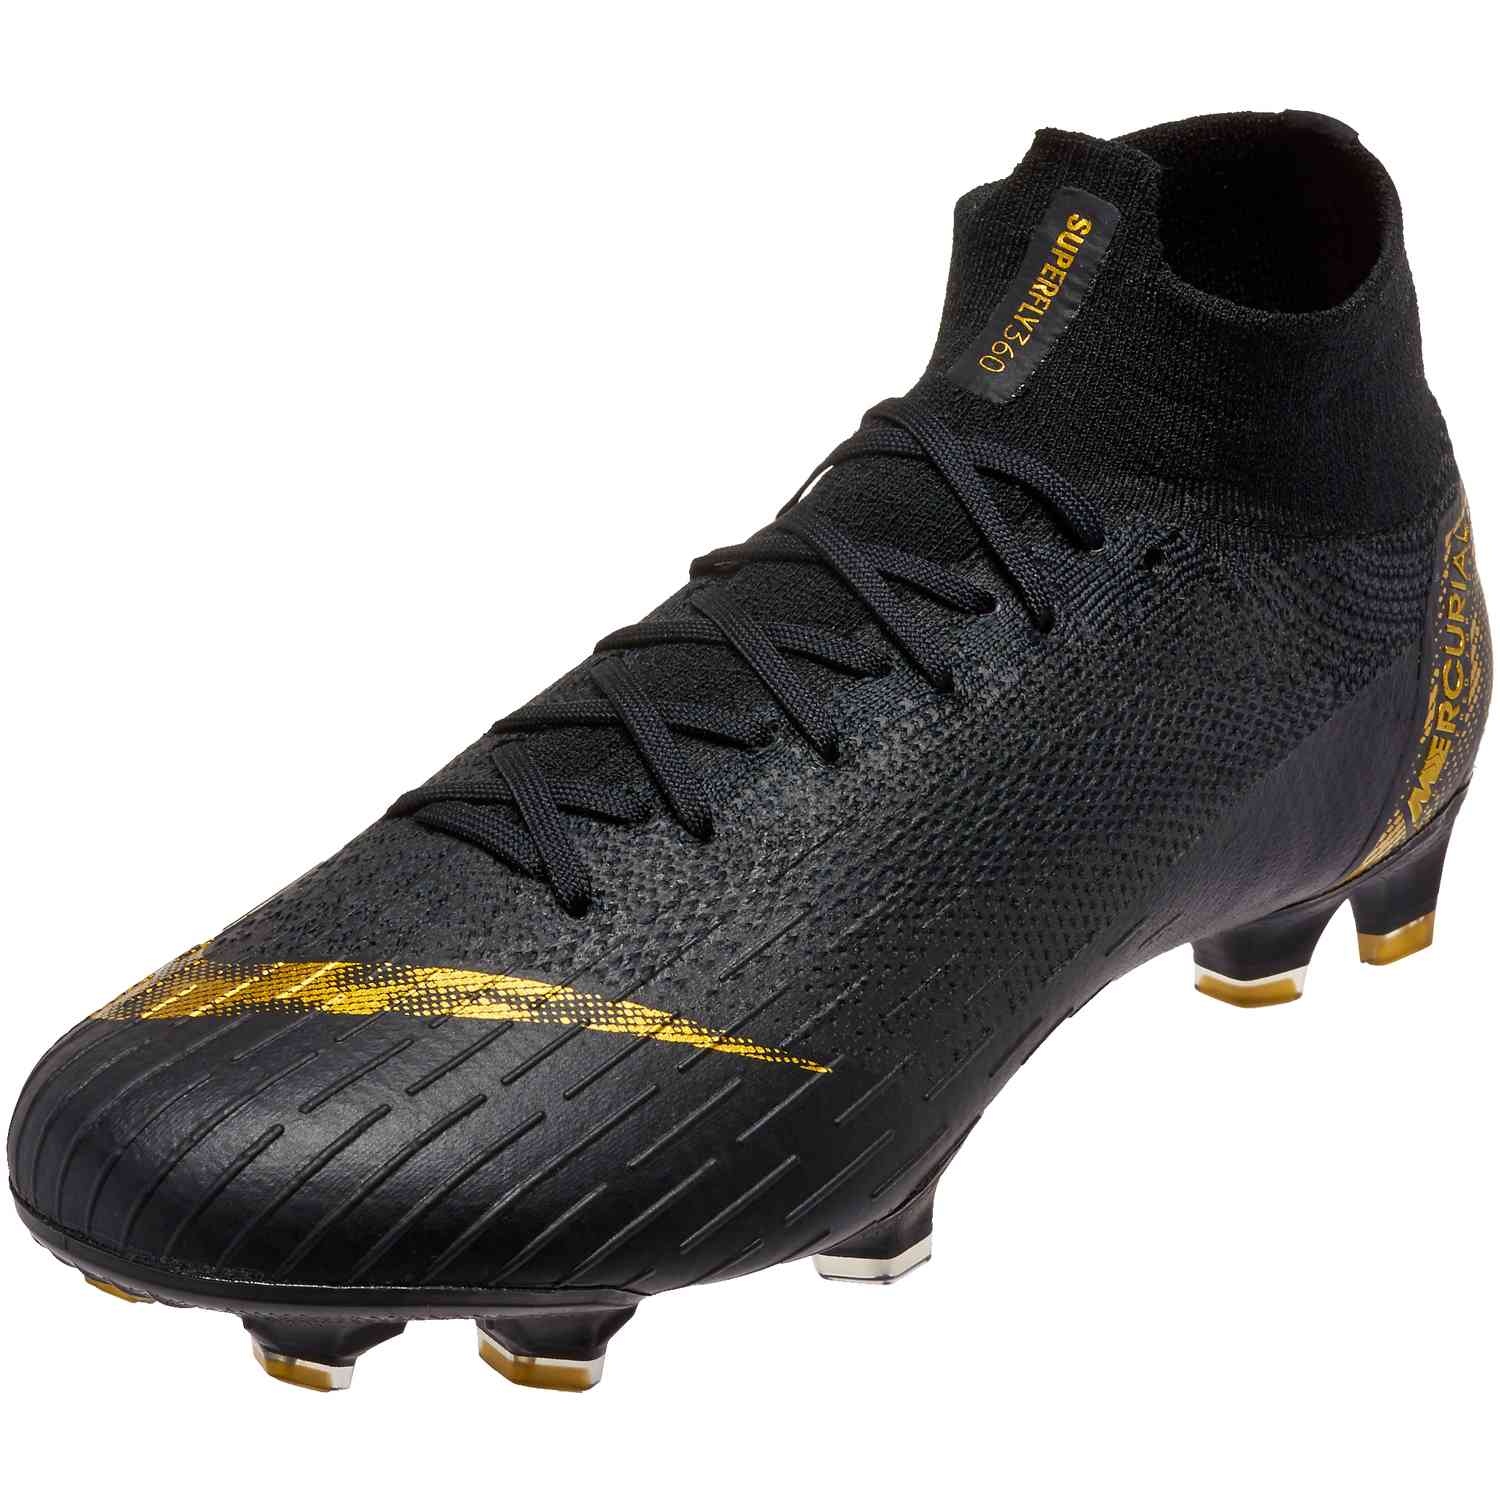 Nike Mercurial Superfly 6 Elite FG – Black Lux